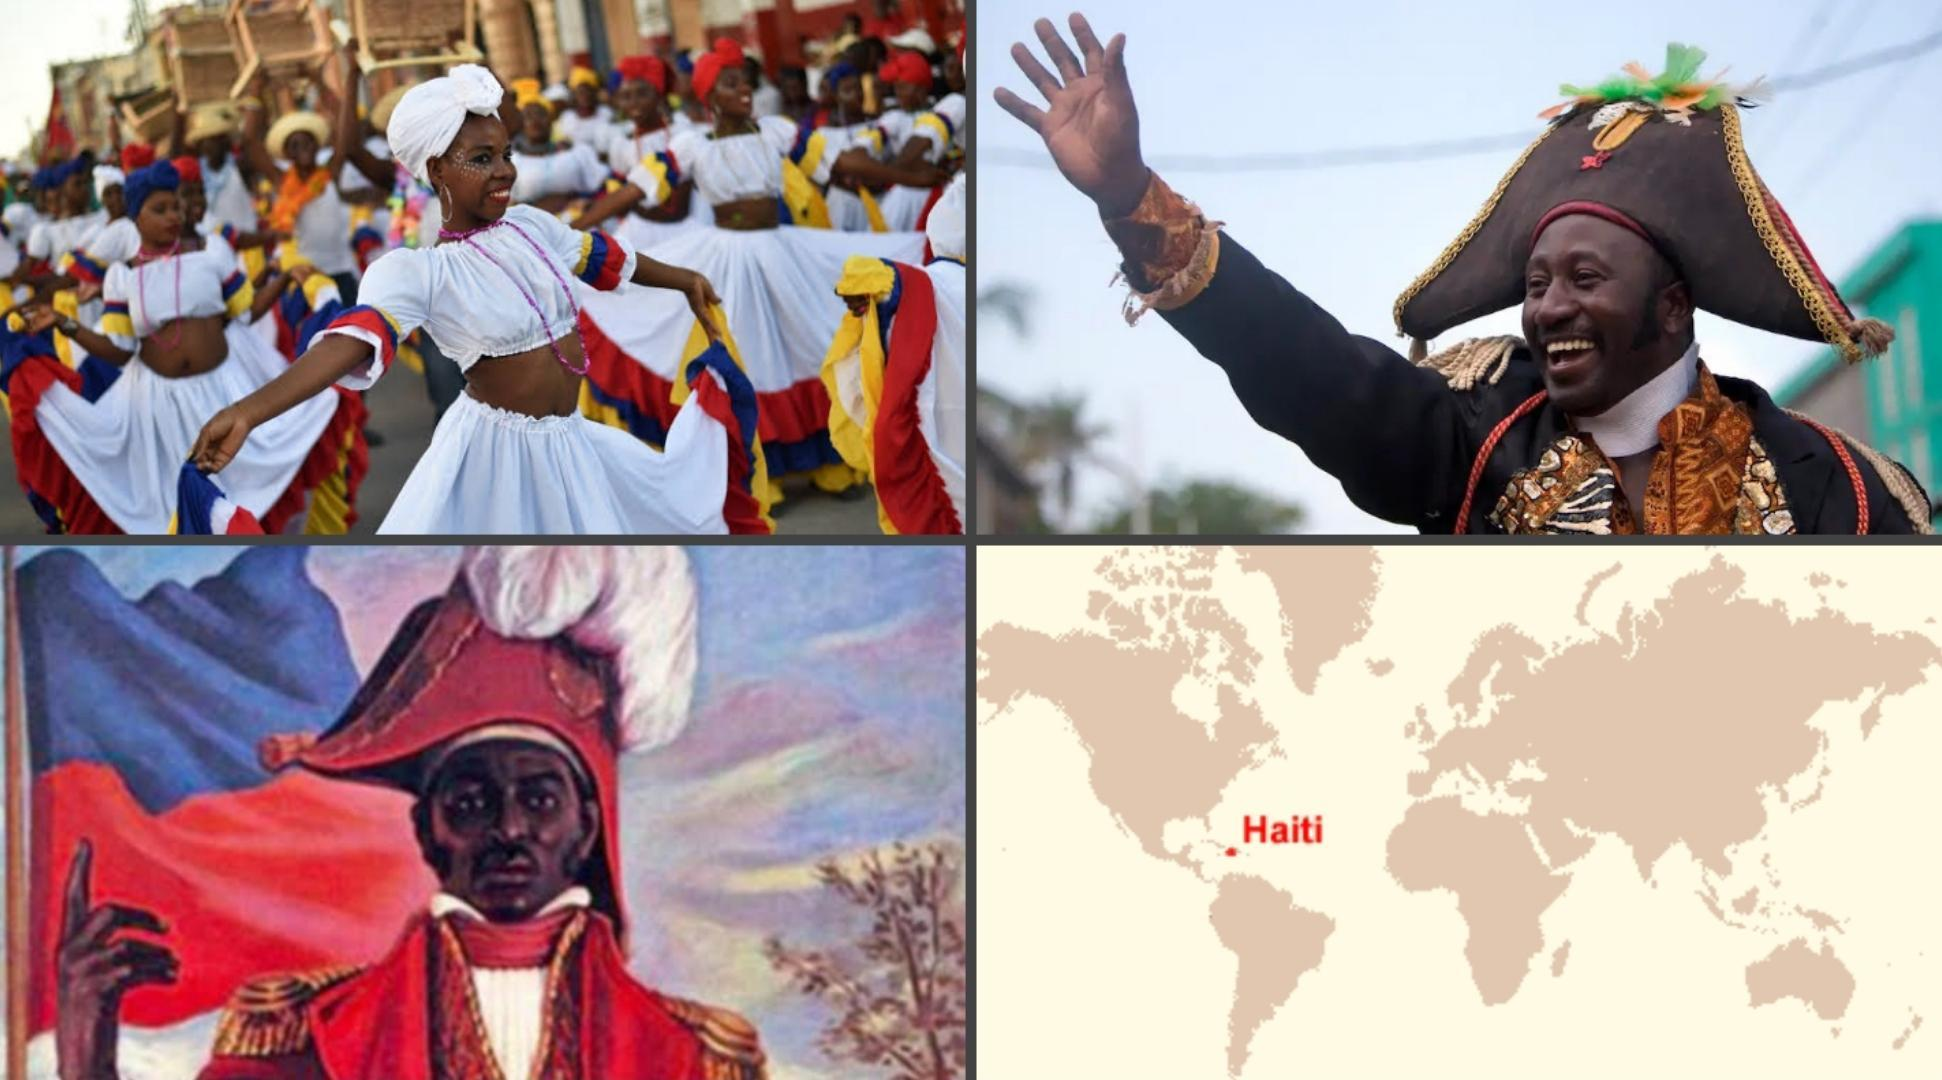 Haiti: the world's first black-led republic and only nation established by slave revolt in history